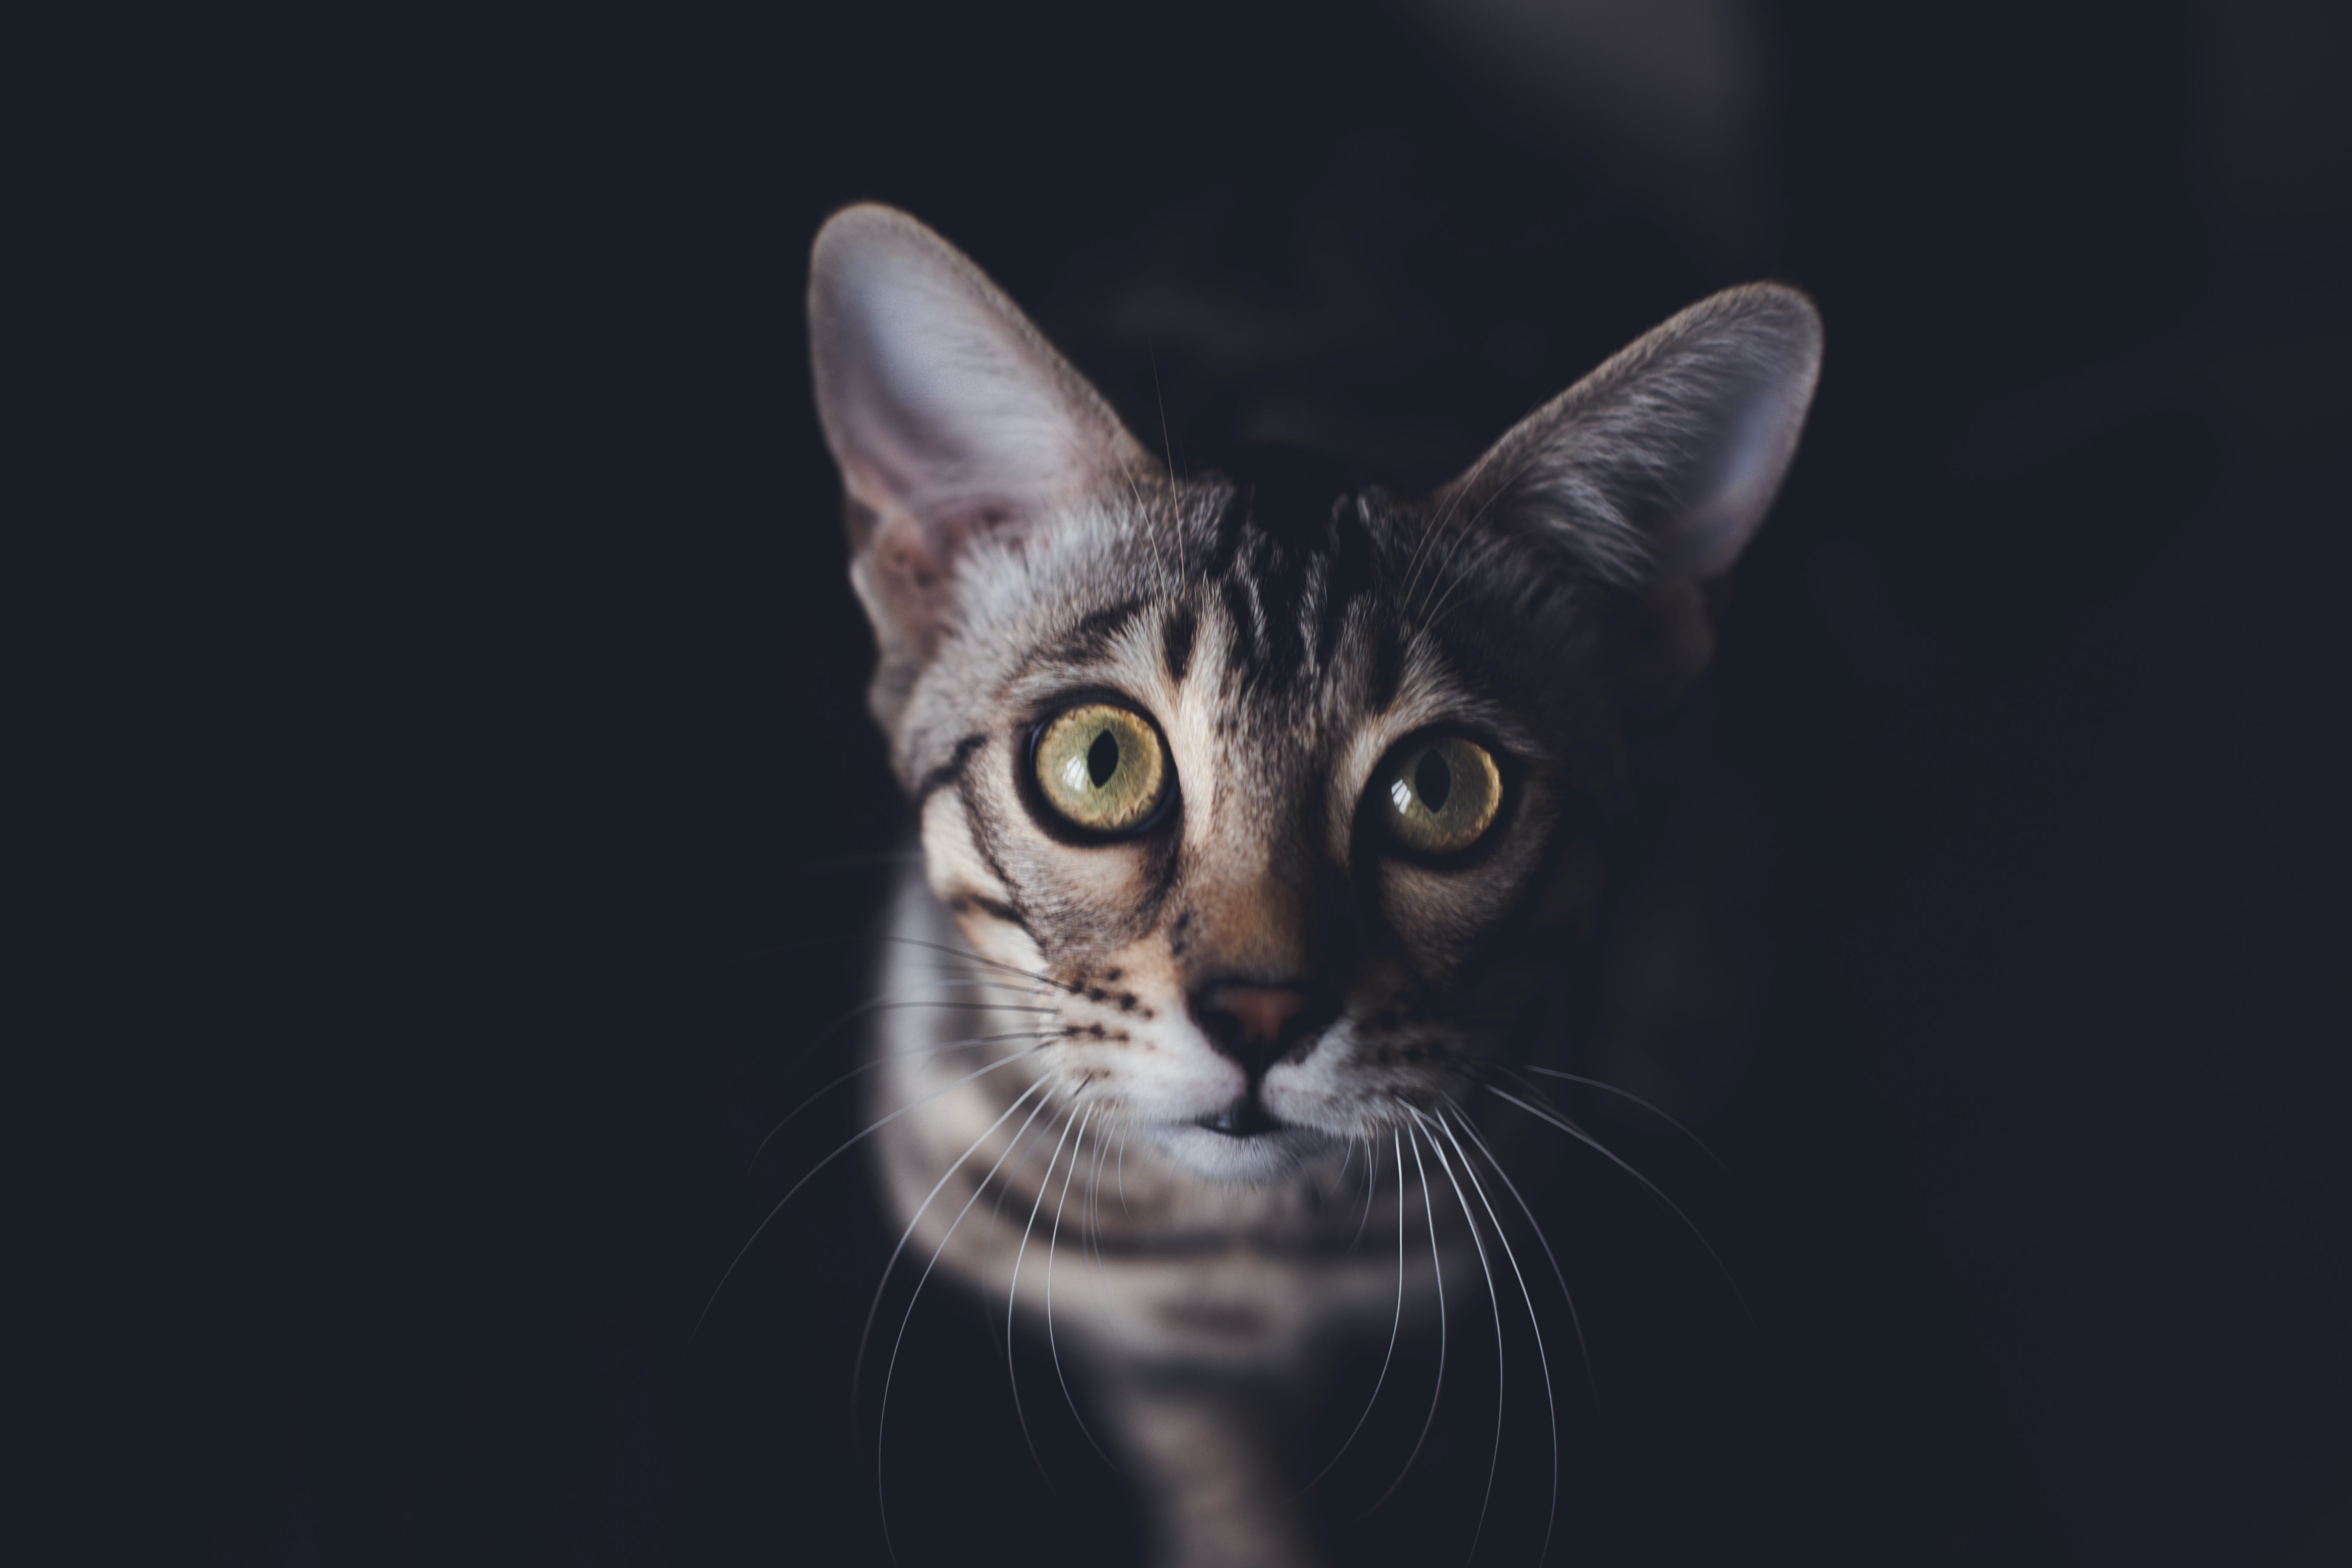 Close Up Photography of Gray Tabby Cat